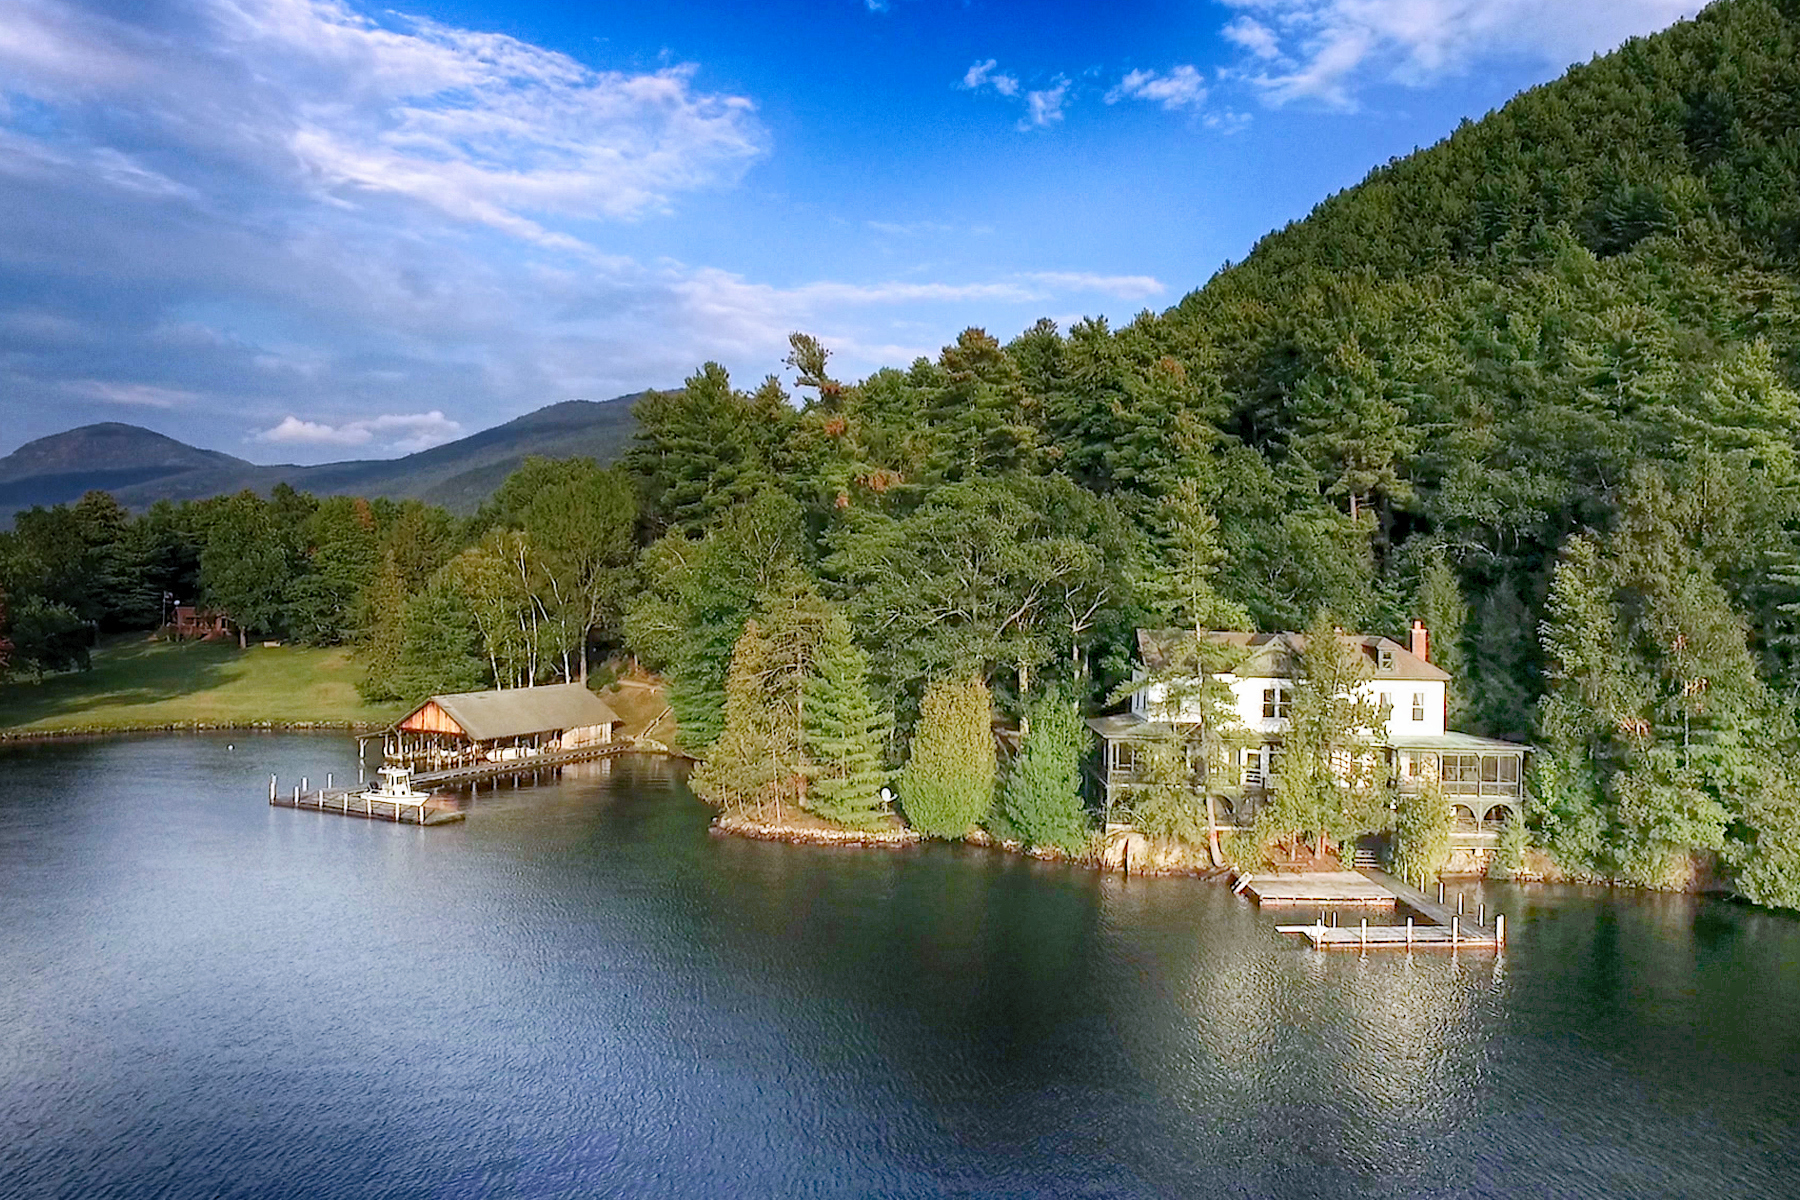 단독 가정 주택 용 매매 에 Lakeside on Lake George 931 Shelving Rock Rd Fort Ann, 뉴욕 12827 미국